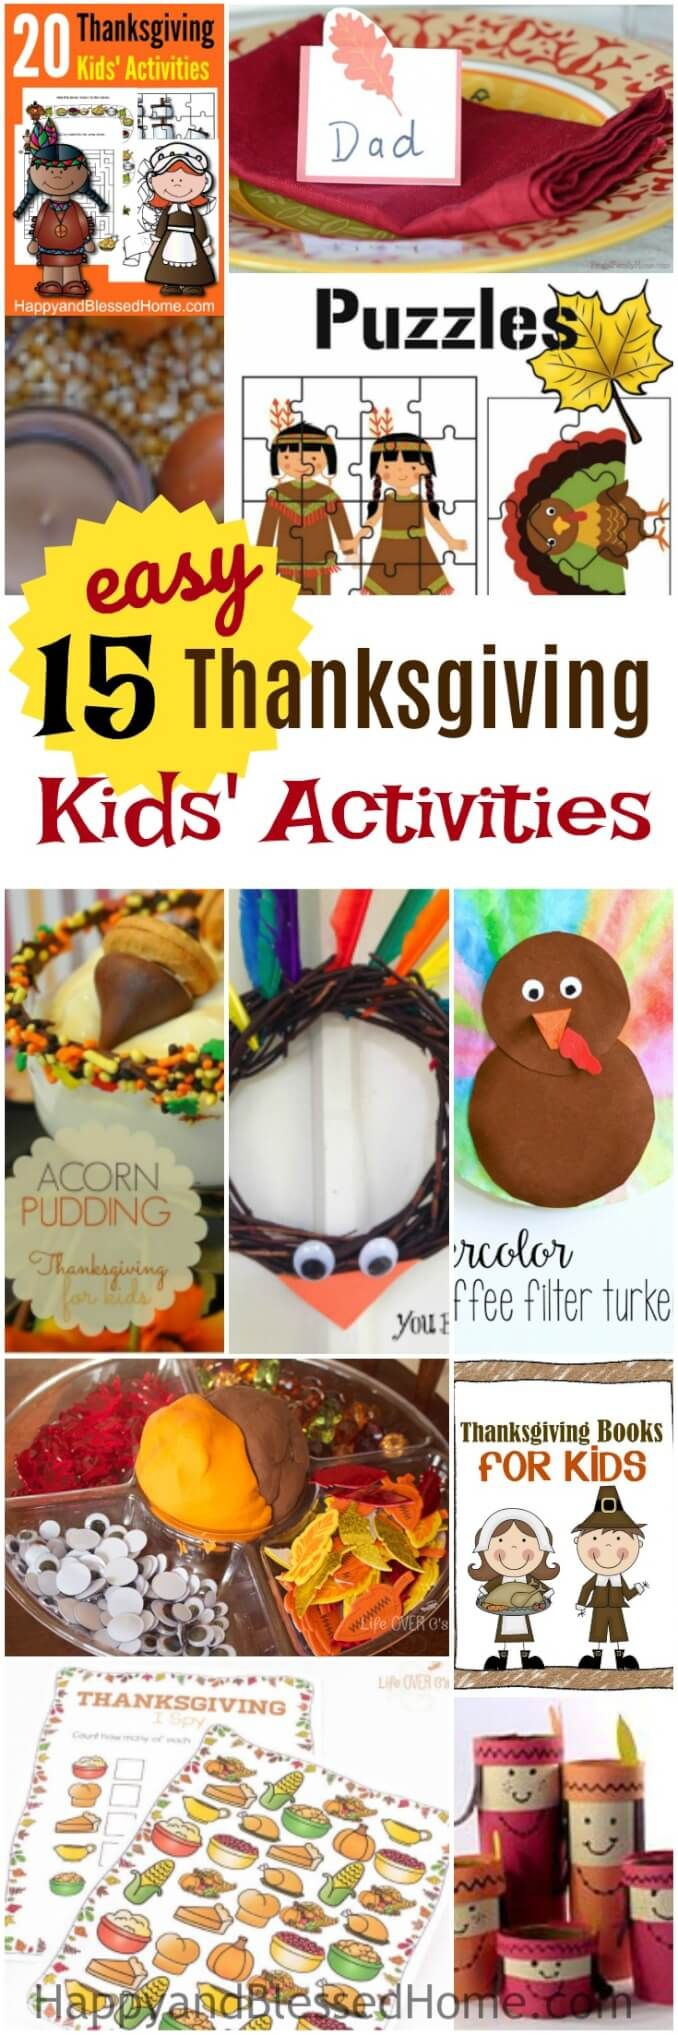 """FREE 15 Easy Thanksgiving Kids' Activities and Crafts - toilet paper crafts, coffee filter crafts, a turkey wreath, a holiday acorn pudding, a sensory and play-doh bin, and loads of free printables with puzzles, coloring, mazes, matching, red and write, """"I Spy"""" game, board game, and more. Keep the kids busy while you cook the Thanksgiving Day Meal."""